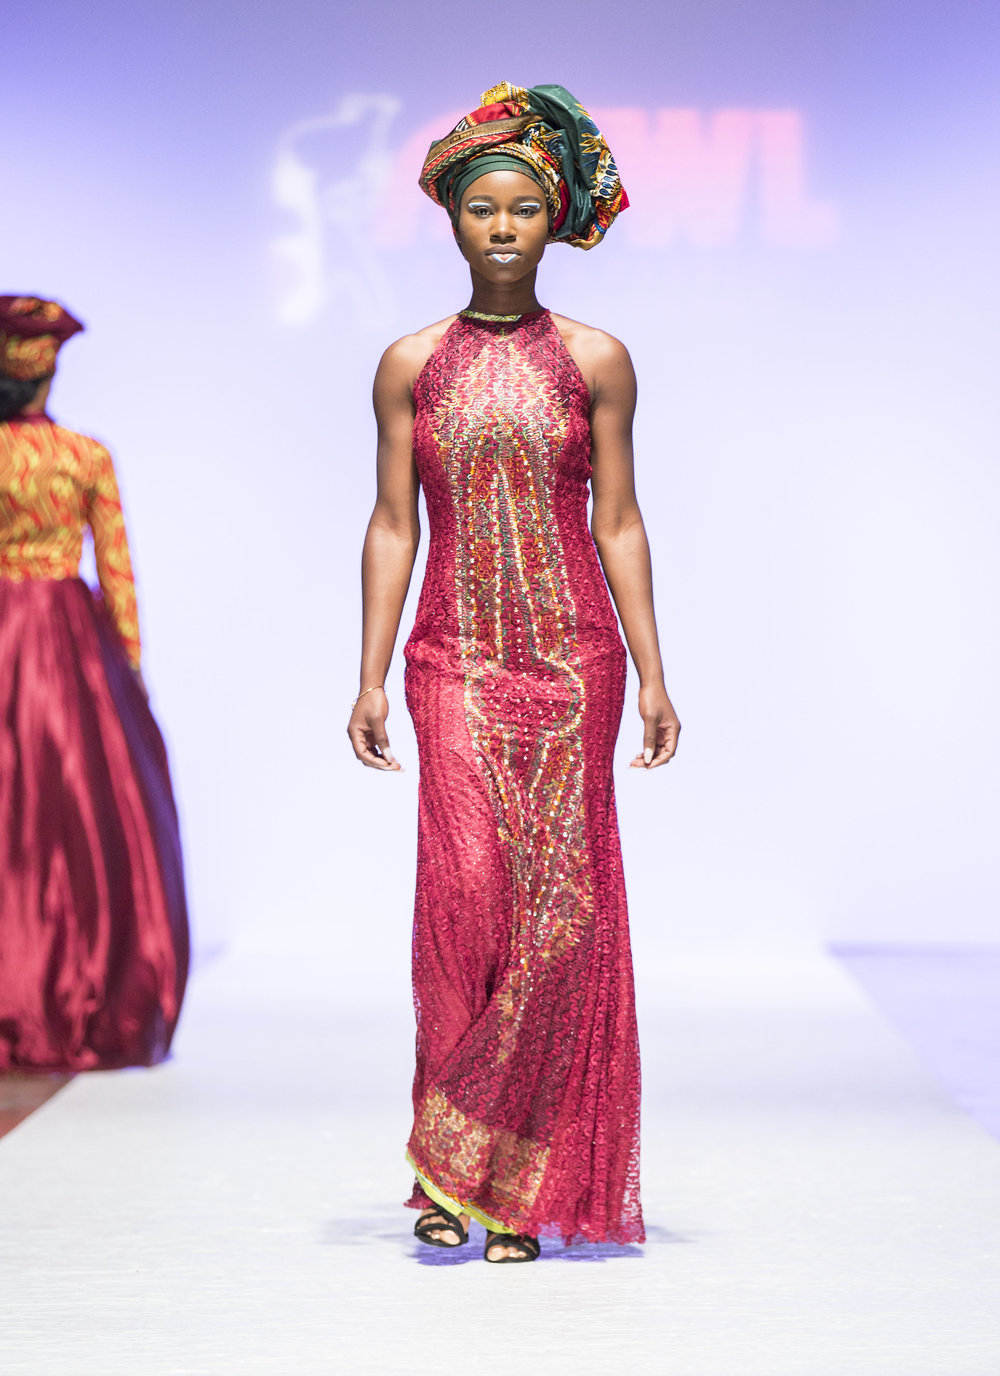 African Fashion Today-Joanna Mitroi Photography 0853 - lo res.jpg